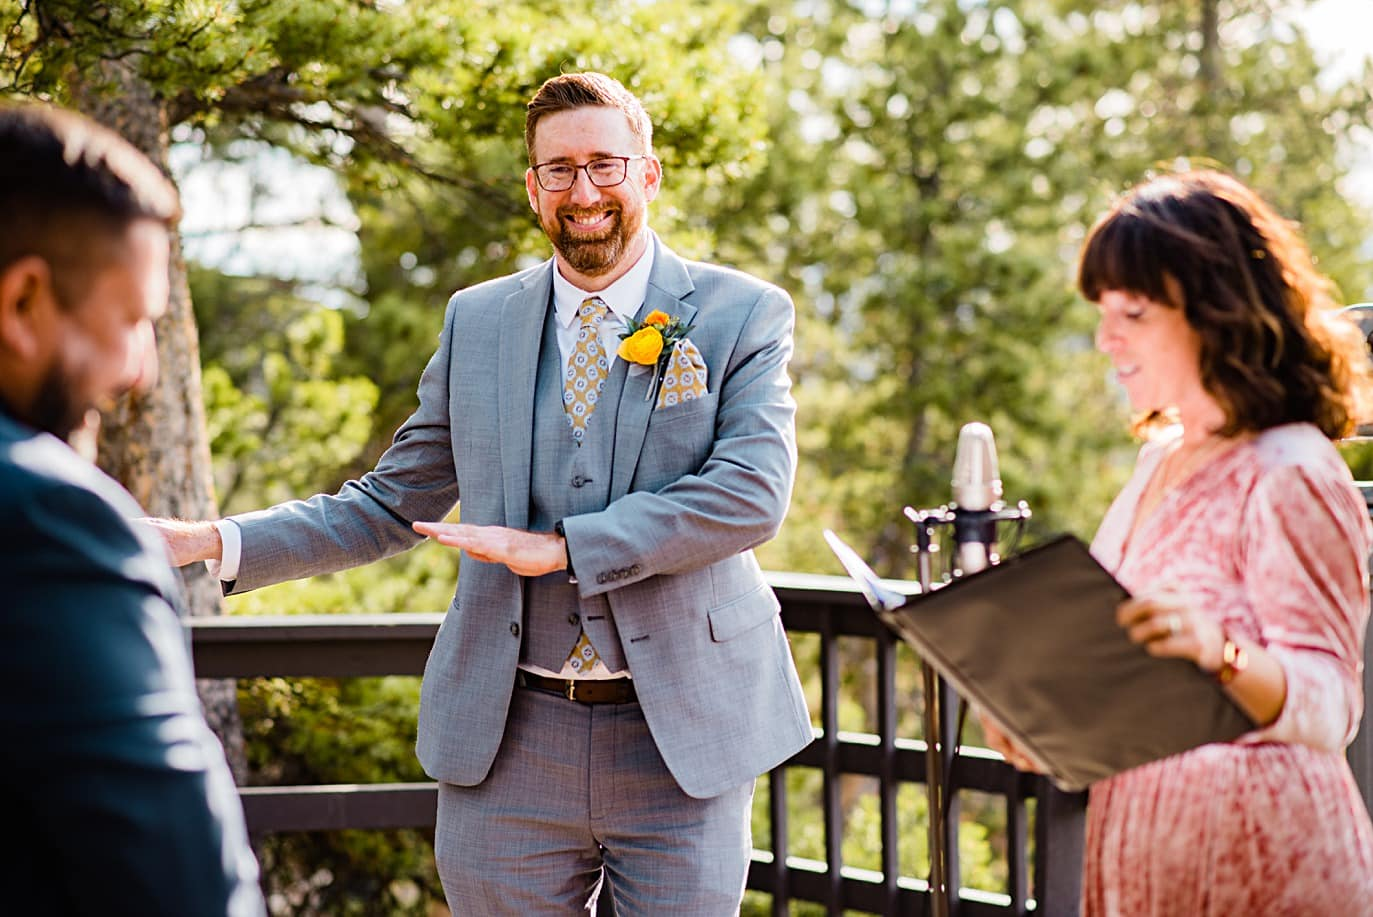 groom dances during vows at LGBT Golden Gate Canyon microwedding by Golden wedding photographer Jennie Crate